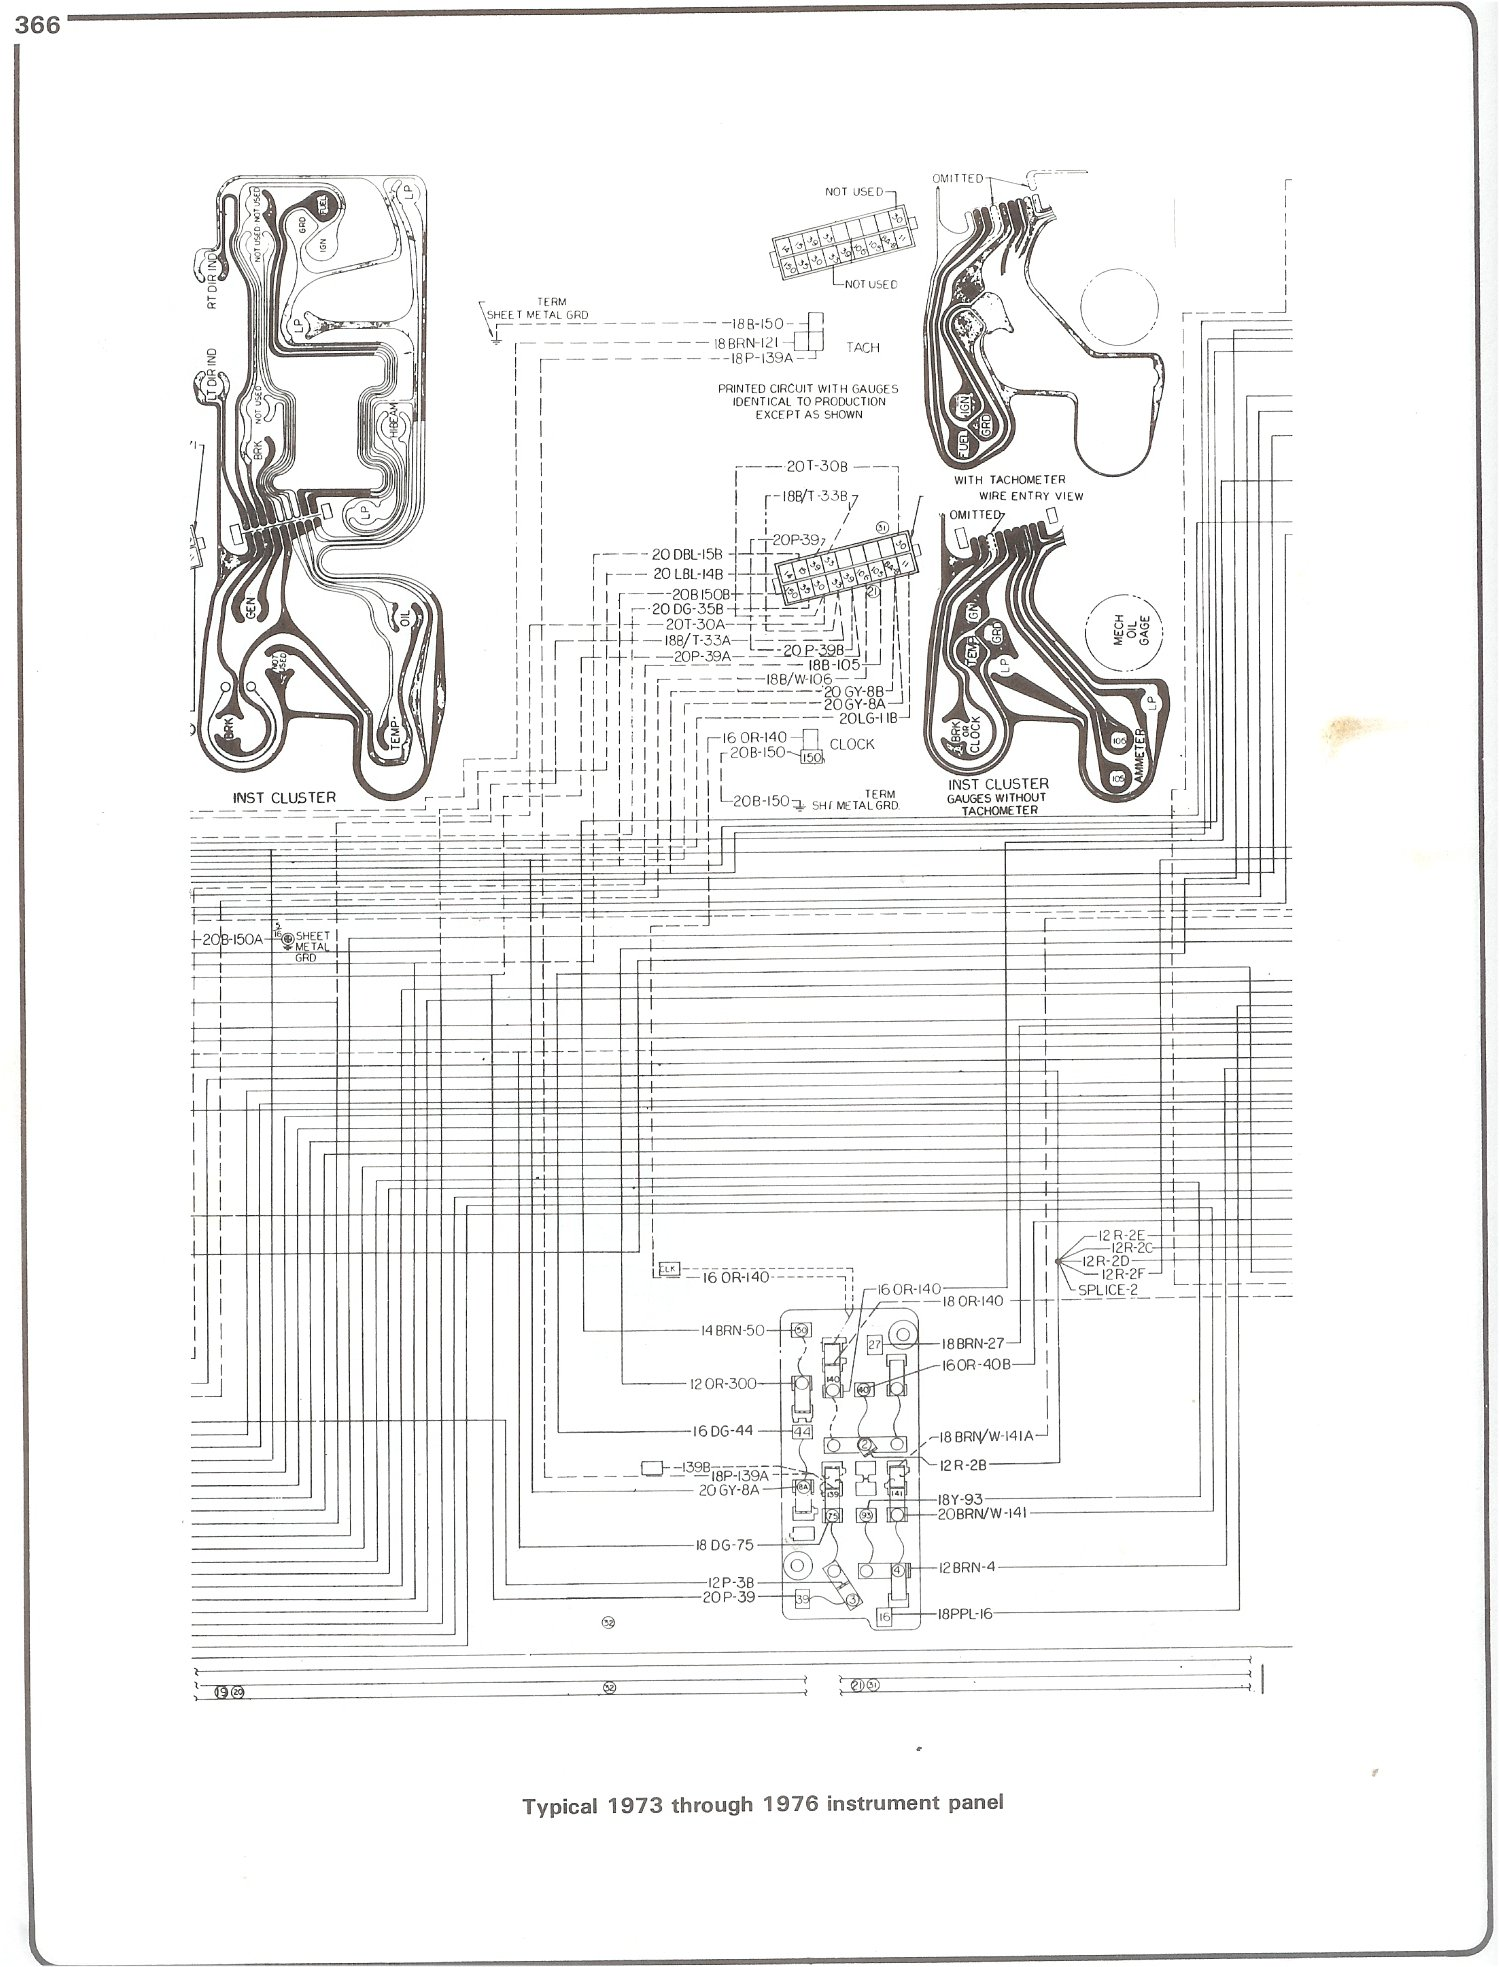 73 76_instrument complete 73 87 wiring diagrams 1988-98 gm-c/k series wiring schematic at gsmx.co